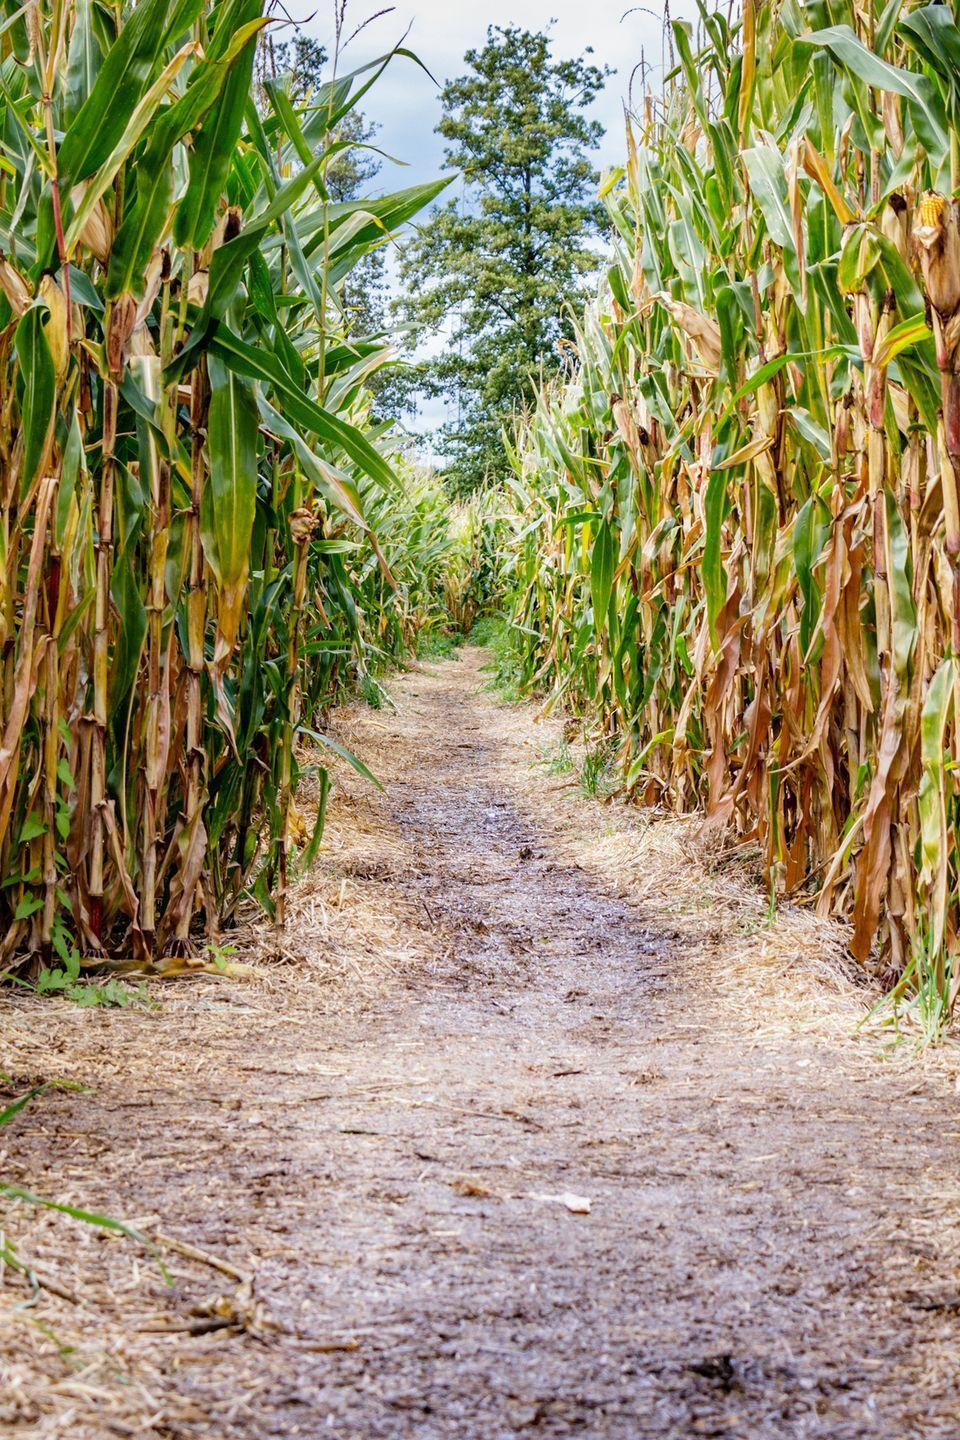 """<p>With two unique corn mazes, <a href=""""https://www.cornbellys.com/corn-maze"""" rel=""""nofollow noopener"""" target=""""_blank"""" data-ylk=""""slk:Cornbelly's"""" class=""""link rapid-noclick-resp"""">Cornbelly's</a> in Spanish Fork and Lehi, Utah, has something for all ages and skill levels. Both have a """"Bea-UTAH-ful"""" theme this year to celebrate their home state.</p><p><a class=""""link rapid-noclick-resp"""" href=""""https://go.redirectingat.com?id=74968X1596630&url=https%3A%2F%2Fwww.tripadvisor.com%2FAttractions-g57134-Activities-Spanish_Fork_Utah.html&sref=https%3A%2F%2Fwww.countryliving.com%2Flife%2Ftravel%2Fg22717241%2Fcorn-maze-near-me%2F"""" rel=""""nofollow noopener"""" target=""""_blank"""" data-ylk=""""slk:PLAN YOUR TRIP"""">PLAN YOUR TRIP</a></p>"""